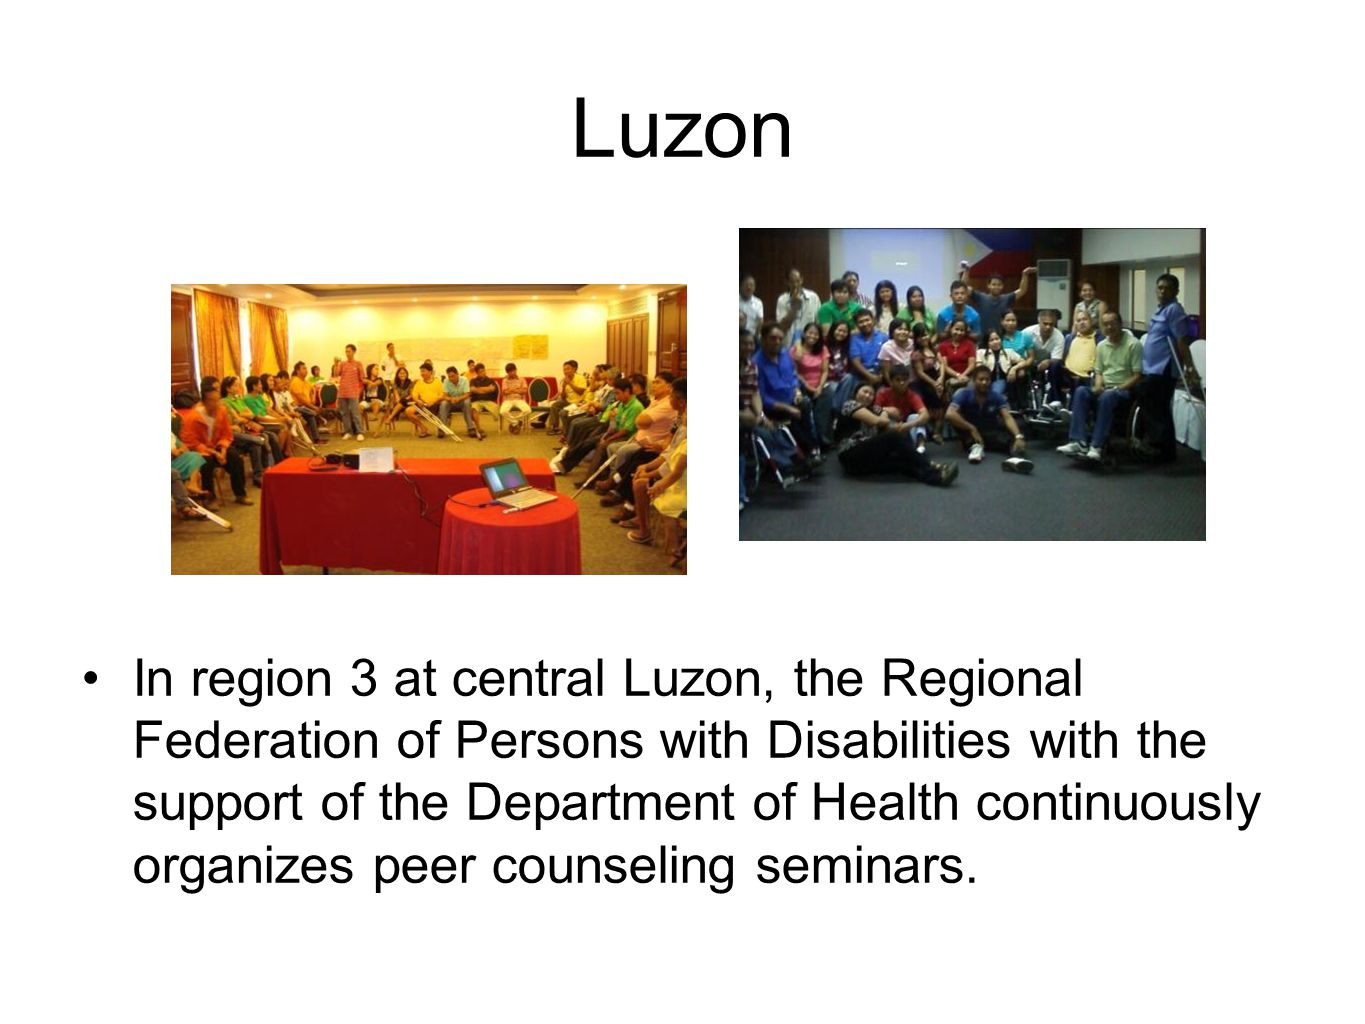 Luzon In region 3 at central Luzon, the Regional Federation of Persons with Disabilities with the support of the Department of Health continuously organizes peer counseling seminars.